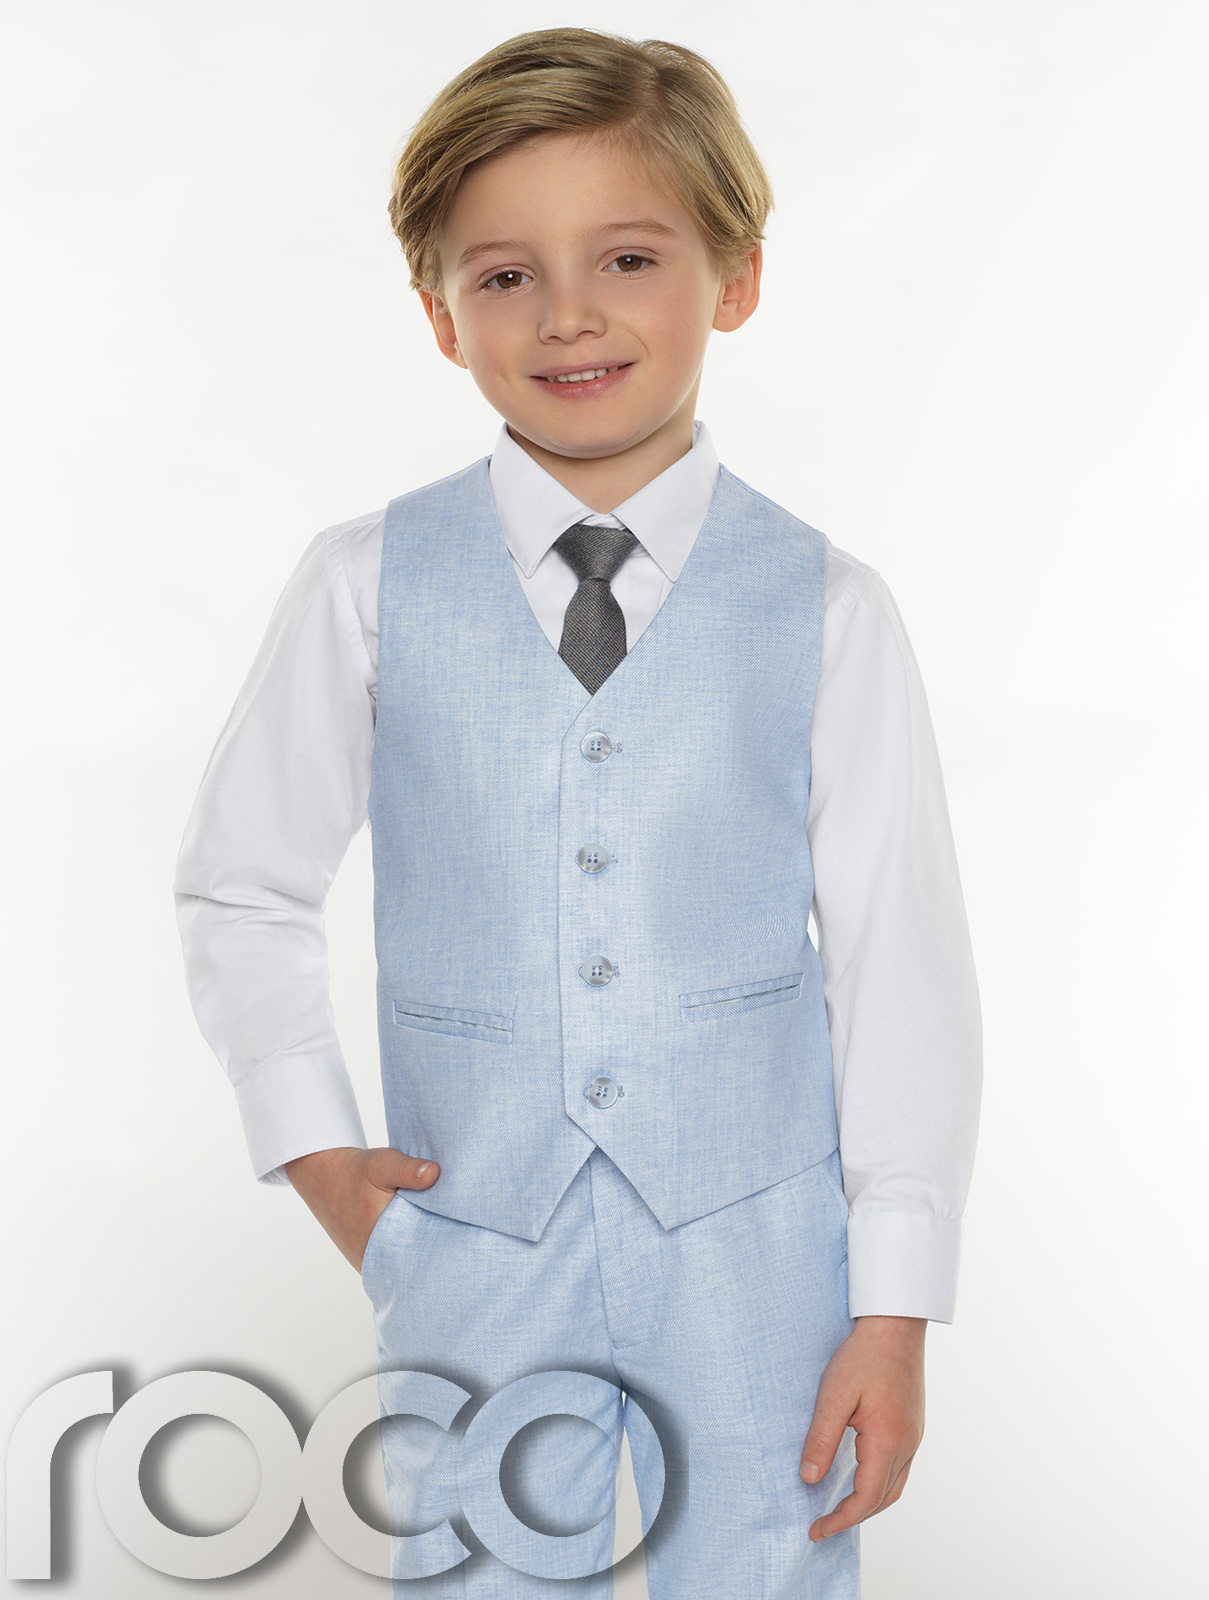 Find great deals on eBay for Boys Linen Suit in Boy's Suits Sizes 4 and Up. Shop with confidence.